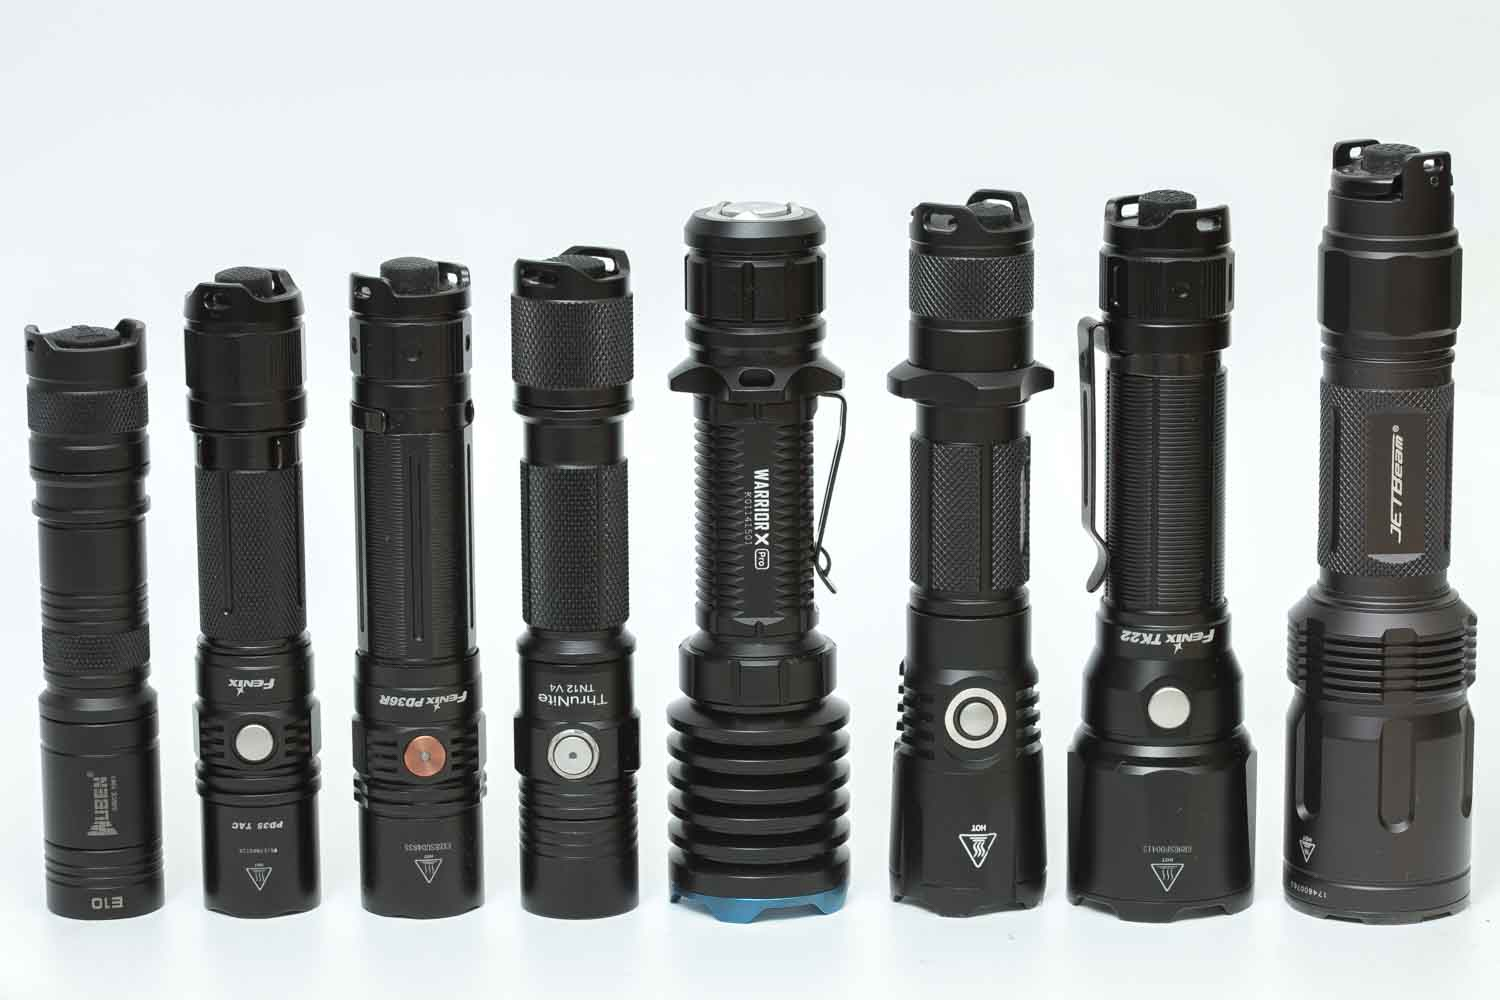 popular tactical flashlights on a row